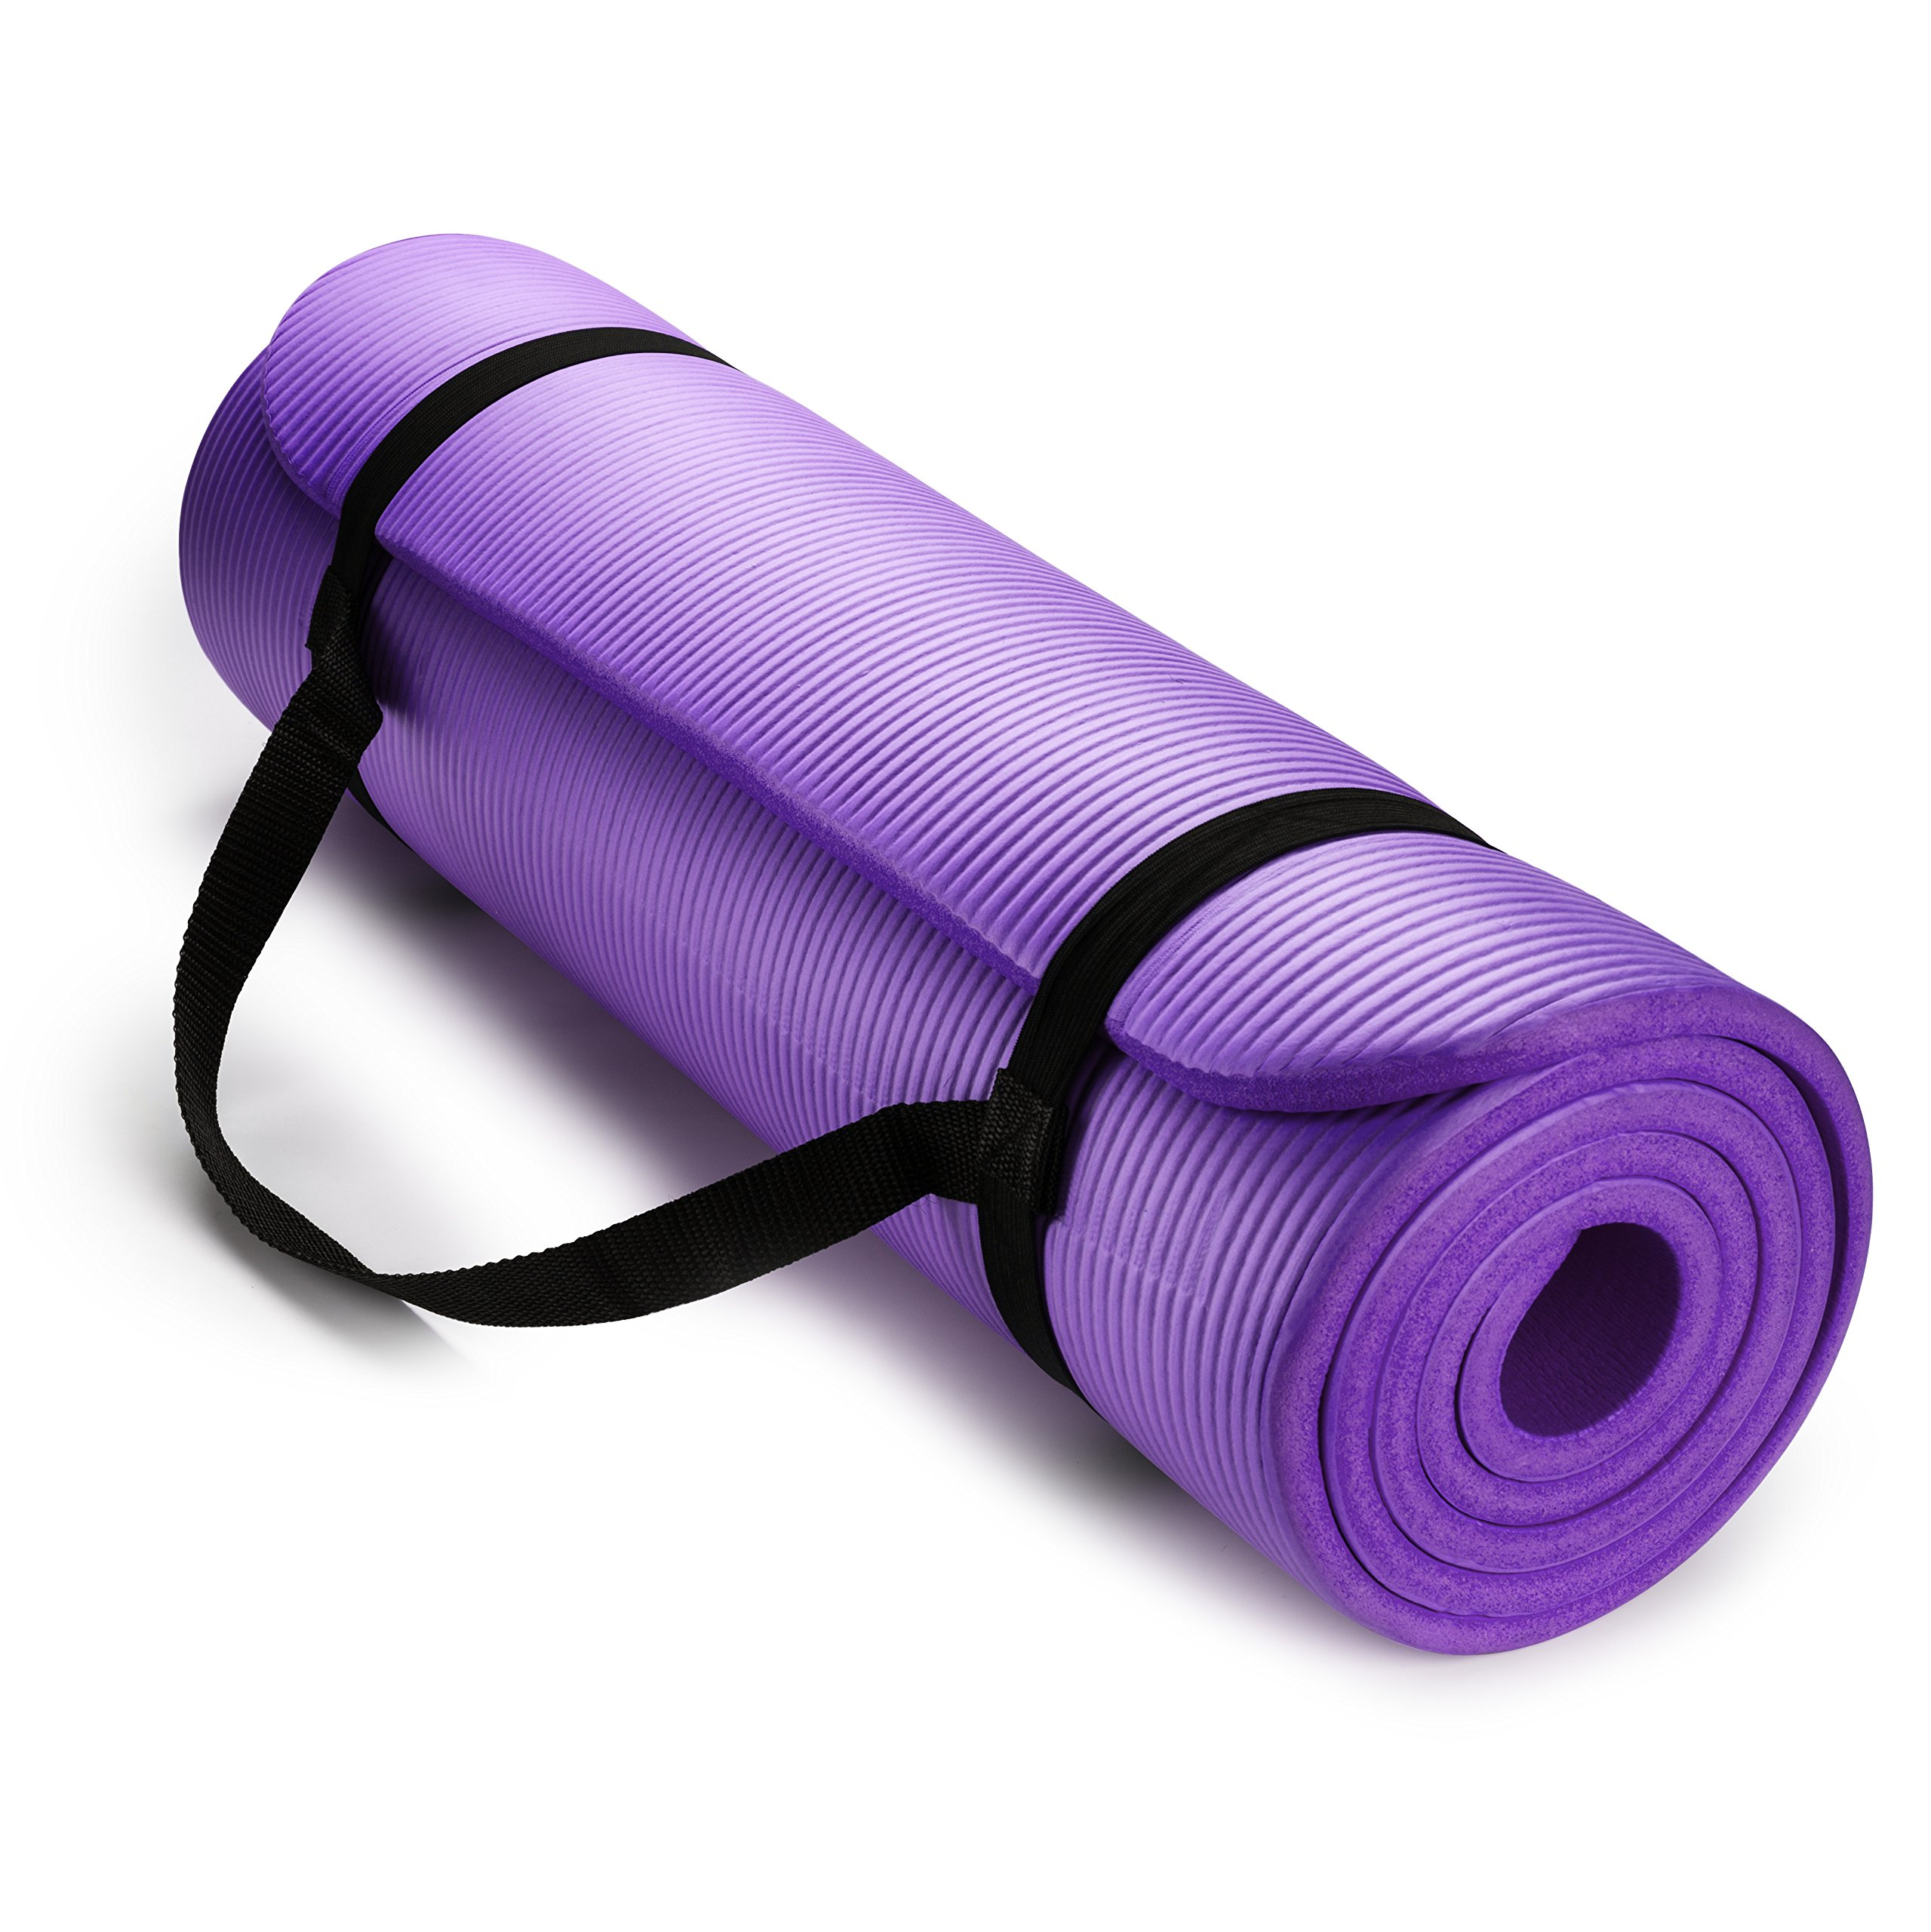 HemingWeigh 1/2-Inch Extra Thick High Density Exercise Yoga Mat with Carrying Strap for Exercise, Yoga and Pilates (Purple)